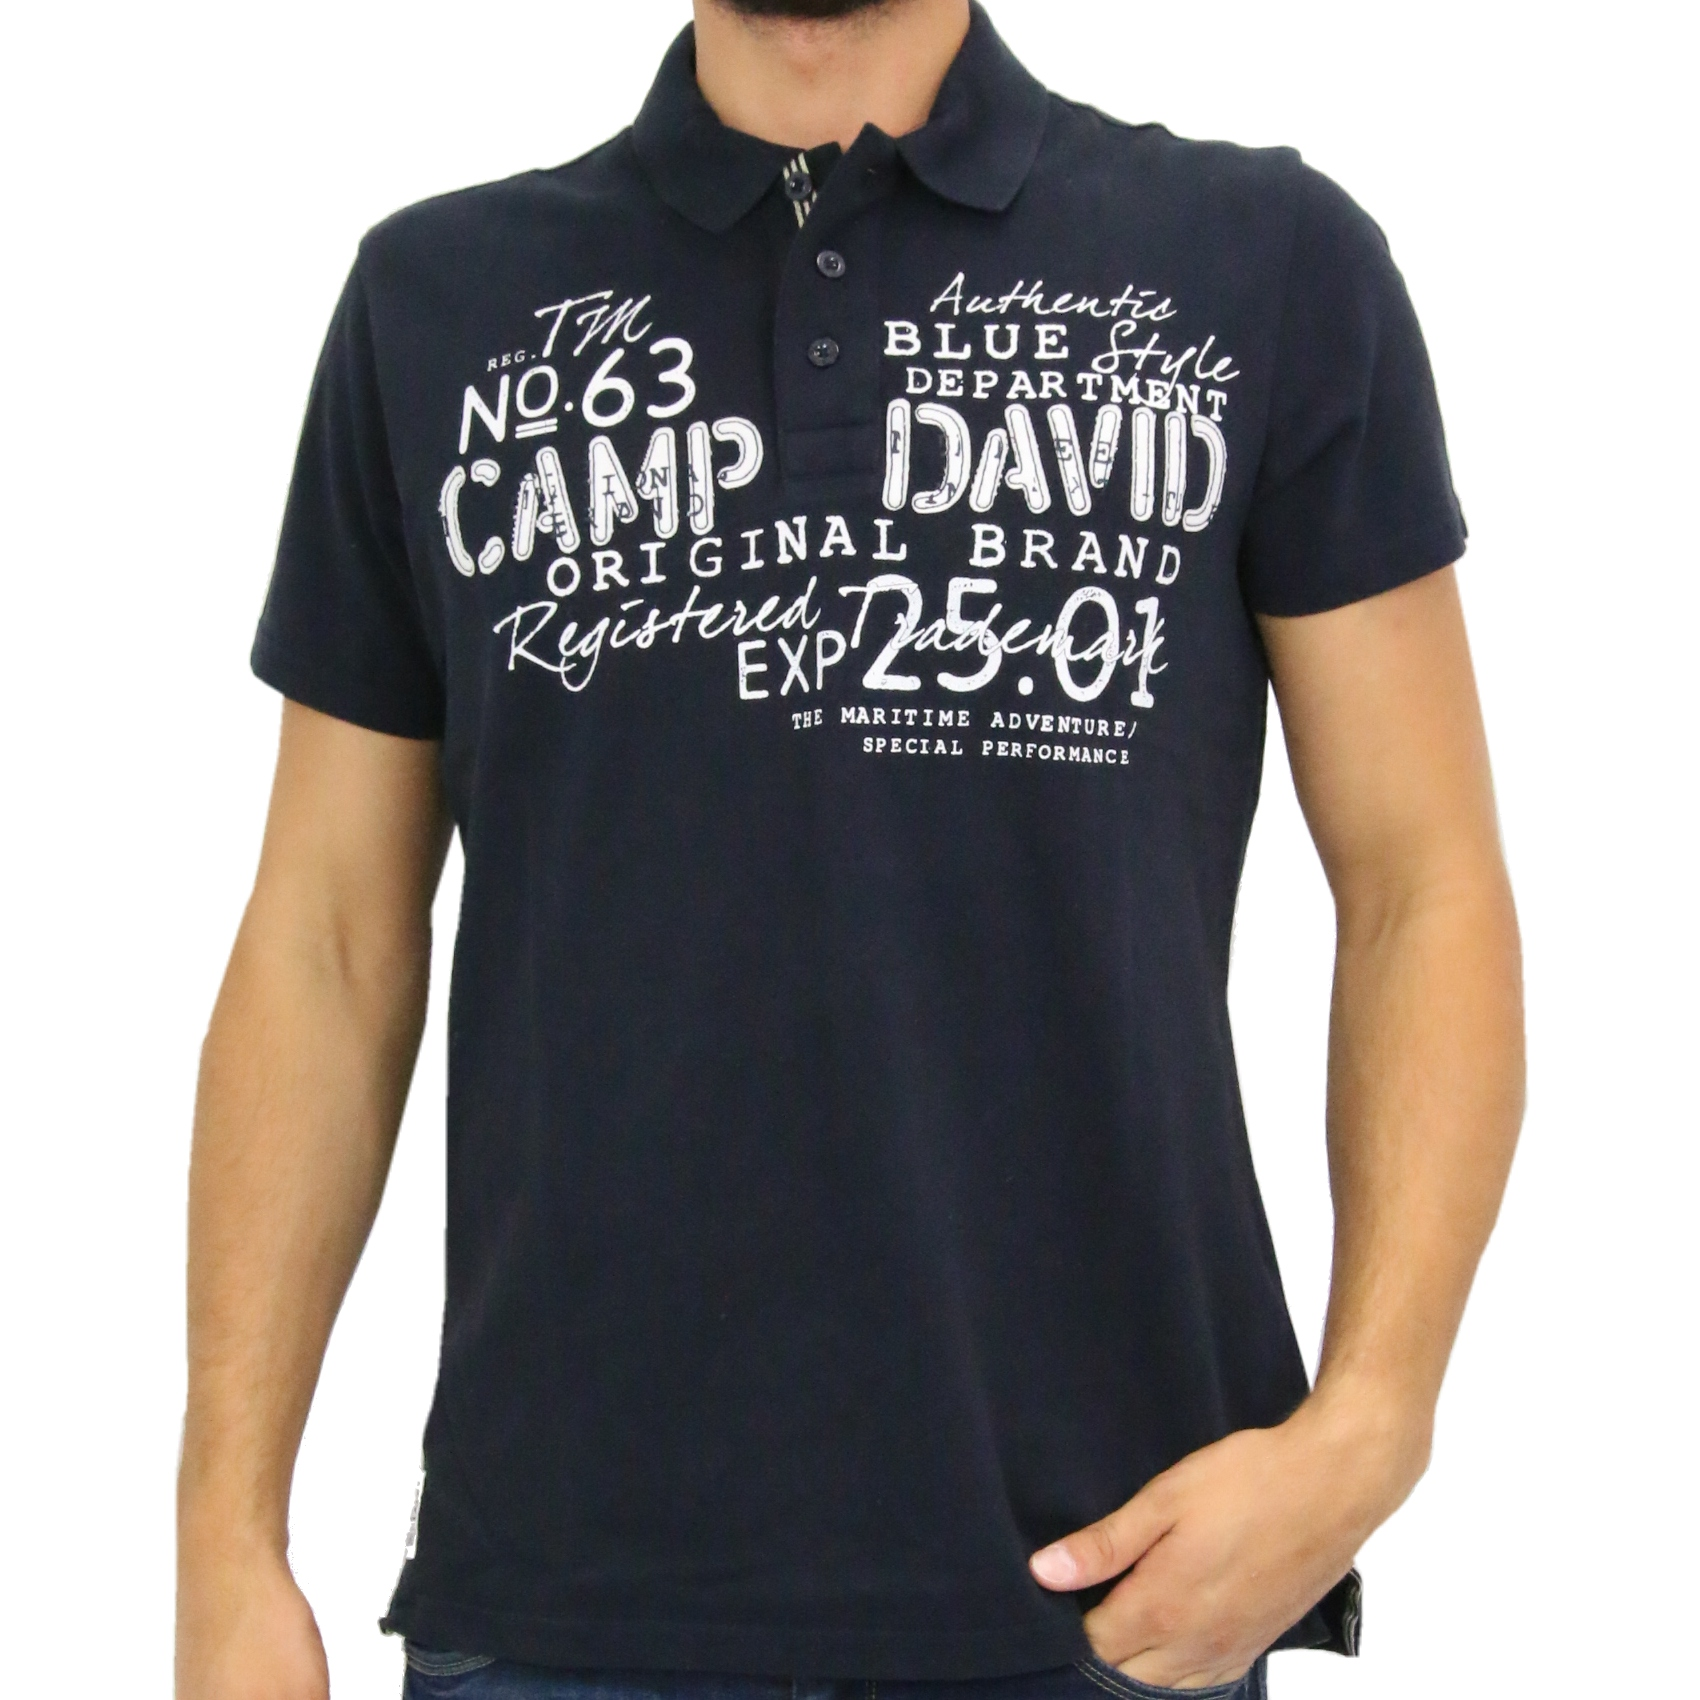 camp david poloshirt polohemd t shirt kurzarm herren blau ccu 5555 3187 ds ebay. Black Bedroom Furniture Sets. Home Design Ideas